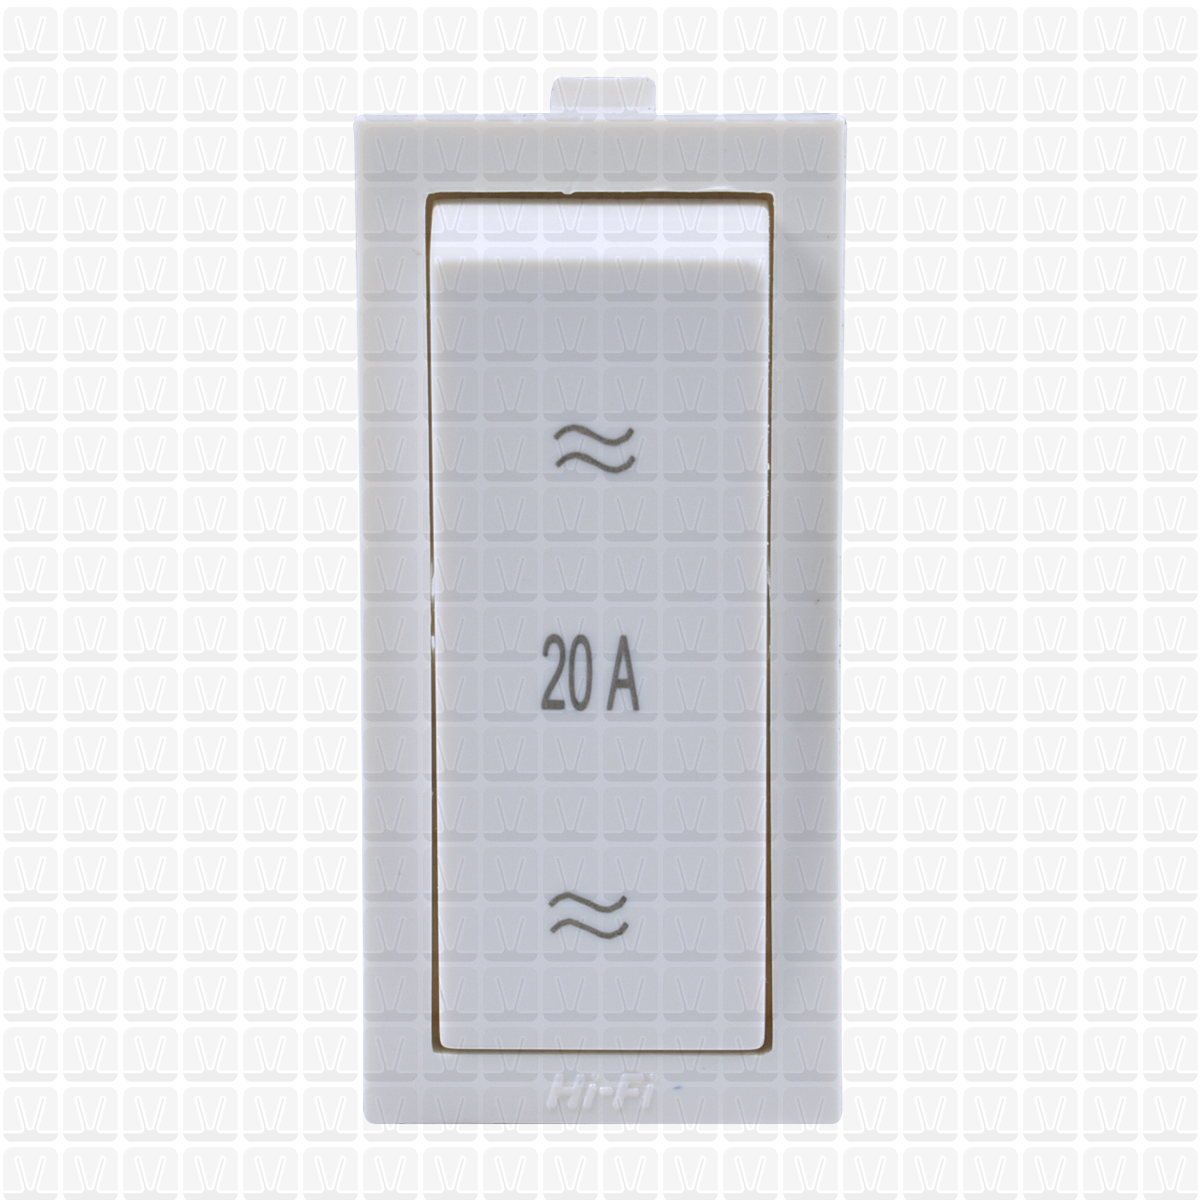 Elle Hi Class Two Way Switch 20 Amp Vardhman Shop How To Wire A Geyser